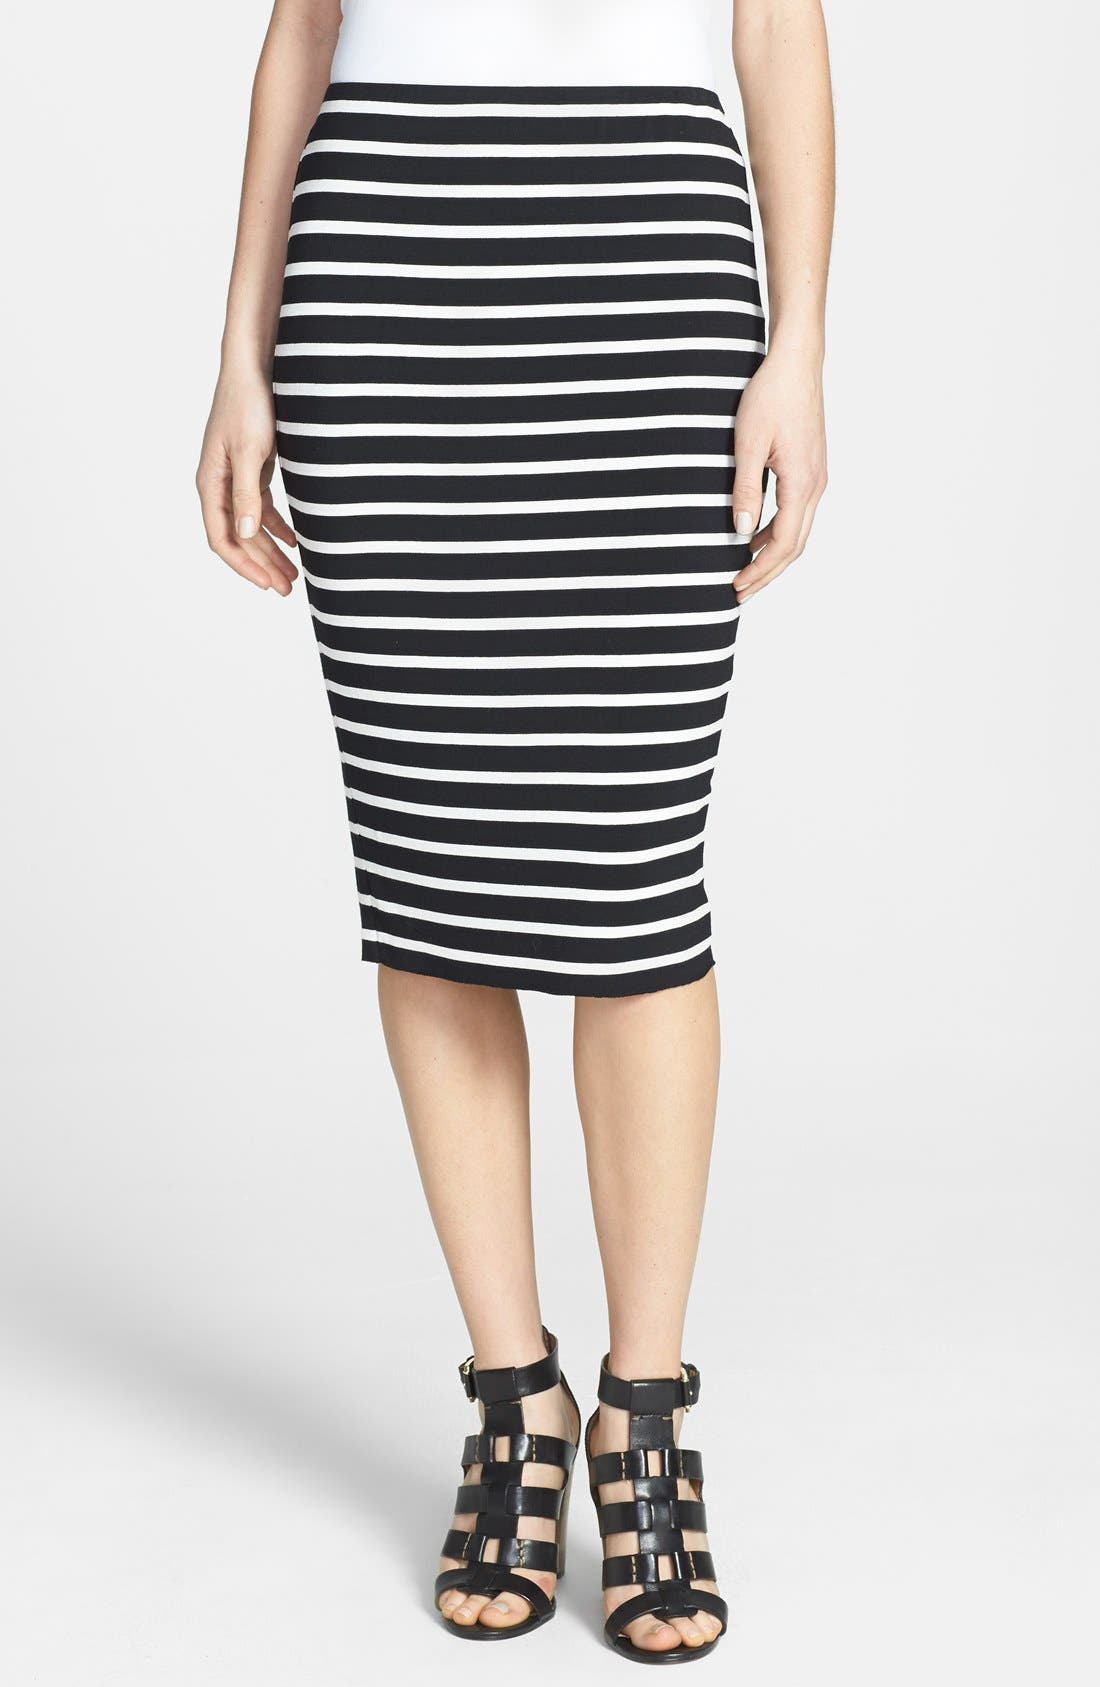 Main Image - Vince Camuto 'Retro Stripes' Midi Tube Skirt (Petite) (2 for $69)